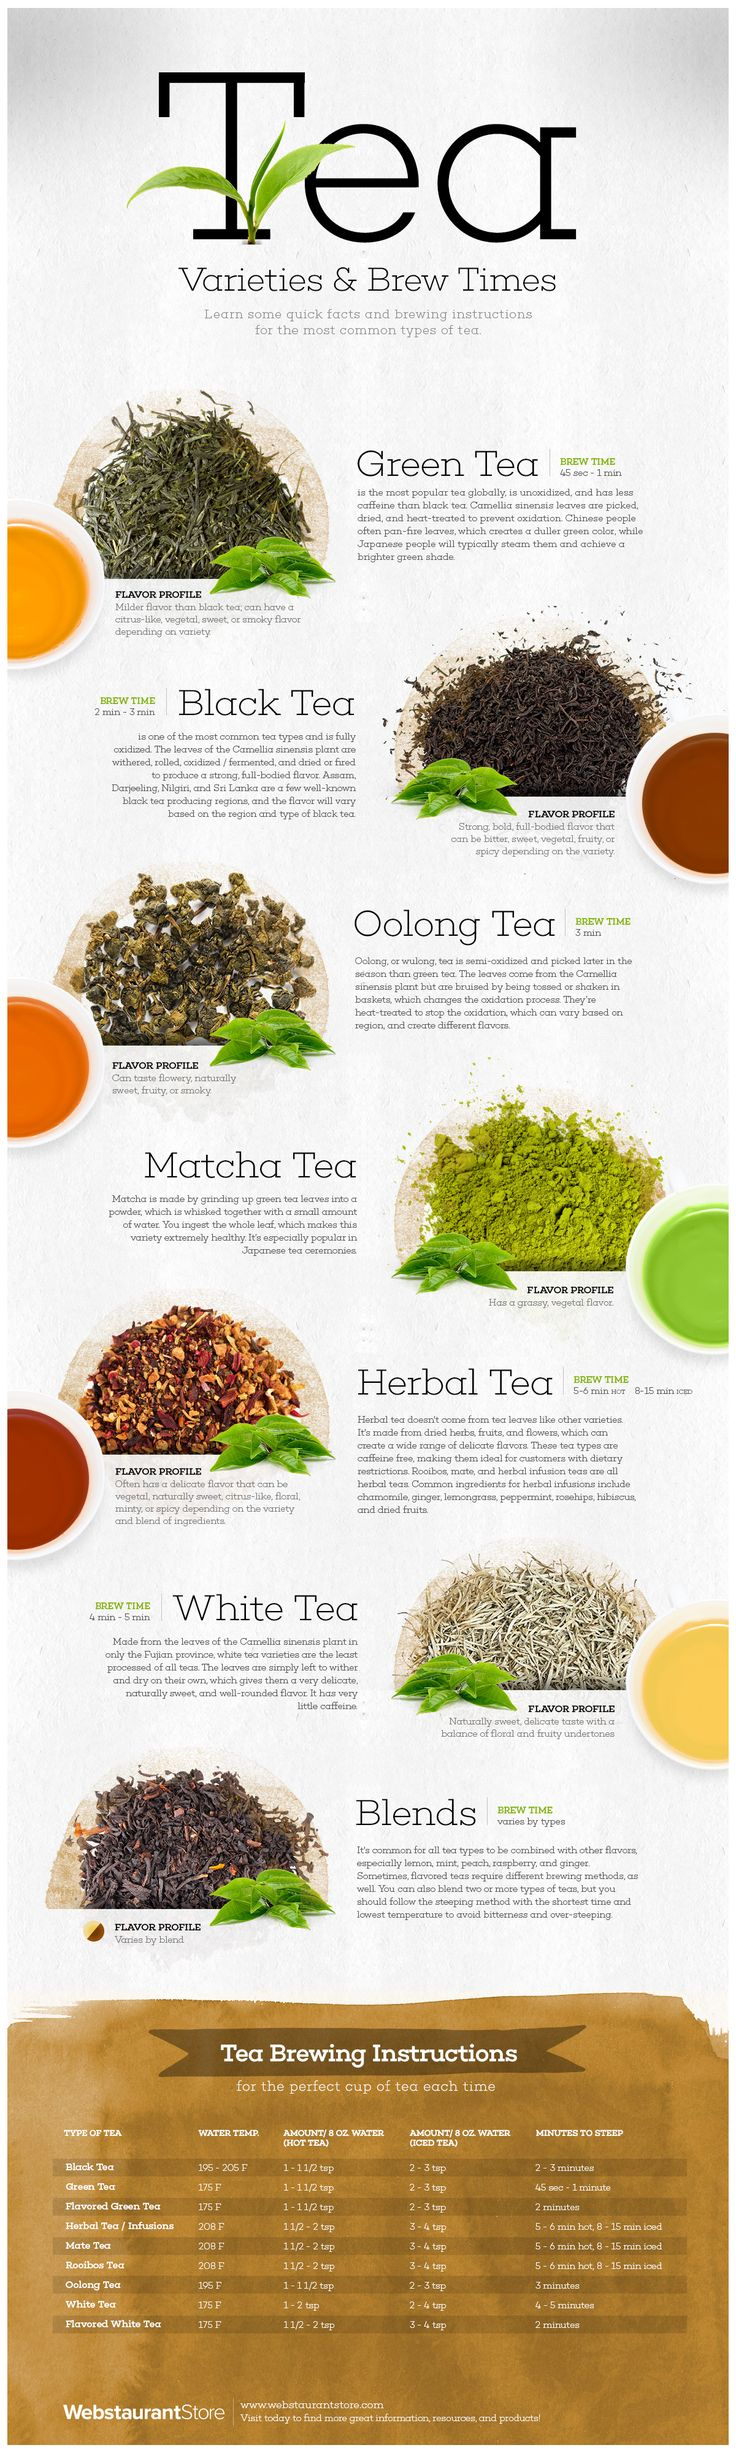 Tea Time! Types of Tea and Optimal Temperature and Brew Times - WebstaurantStore Blog